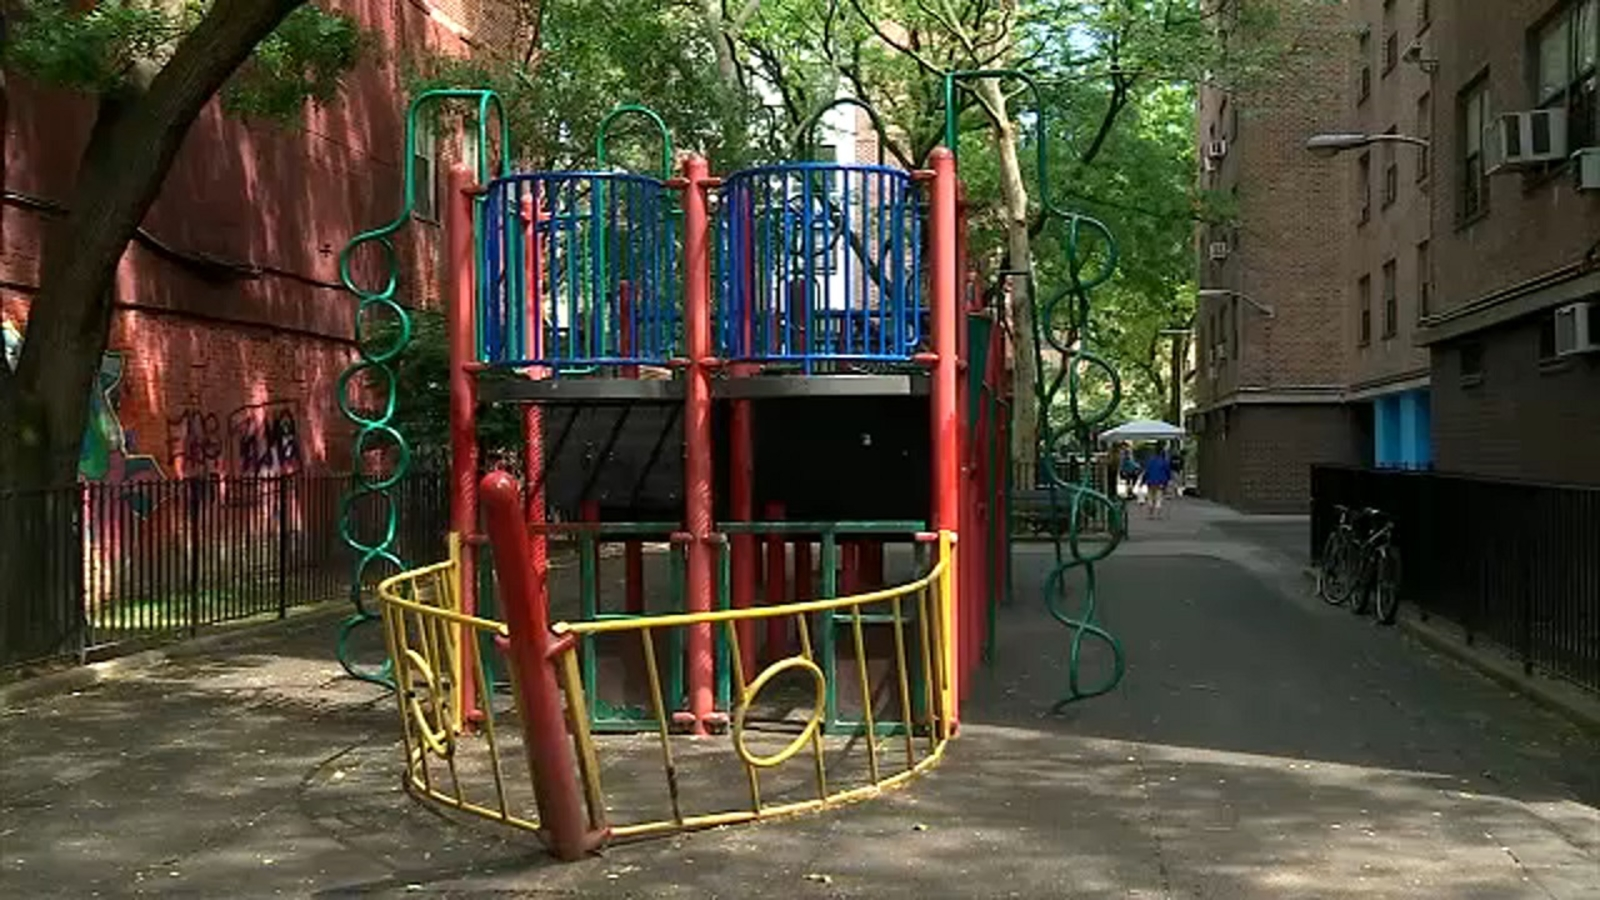 NYCHA considering tearing down newly renovated playground to build high rise